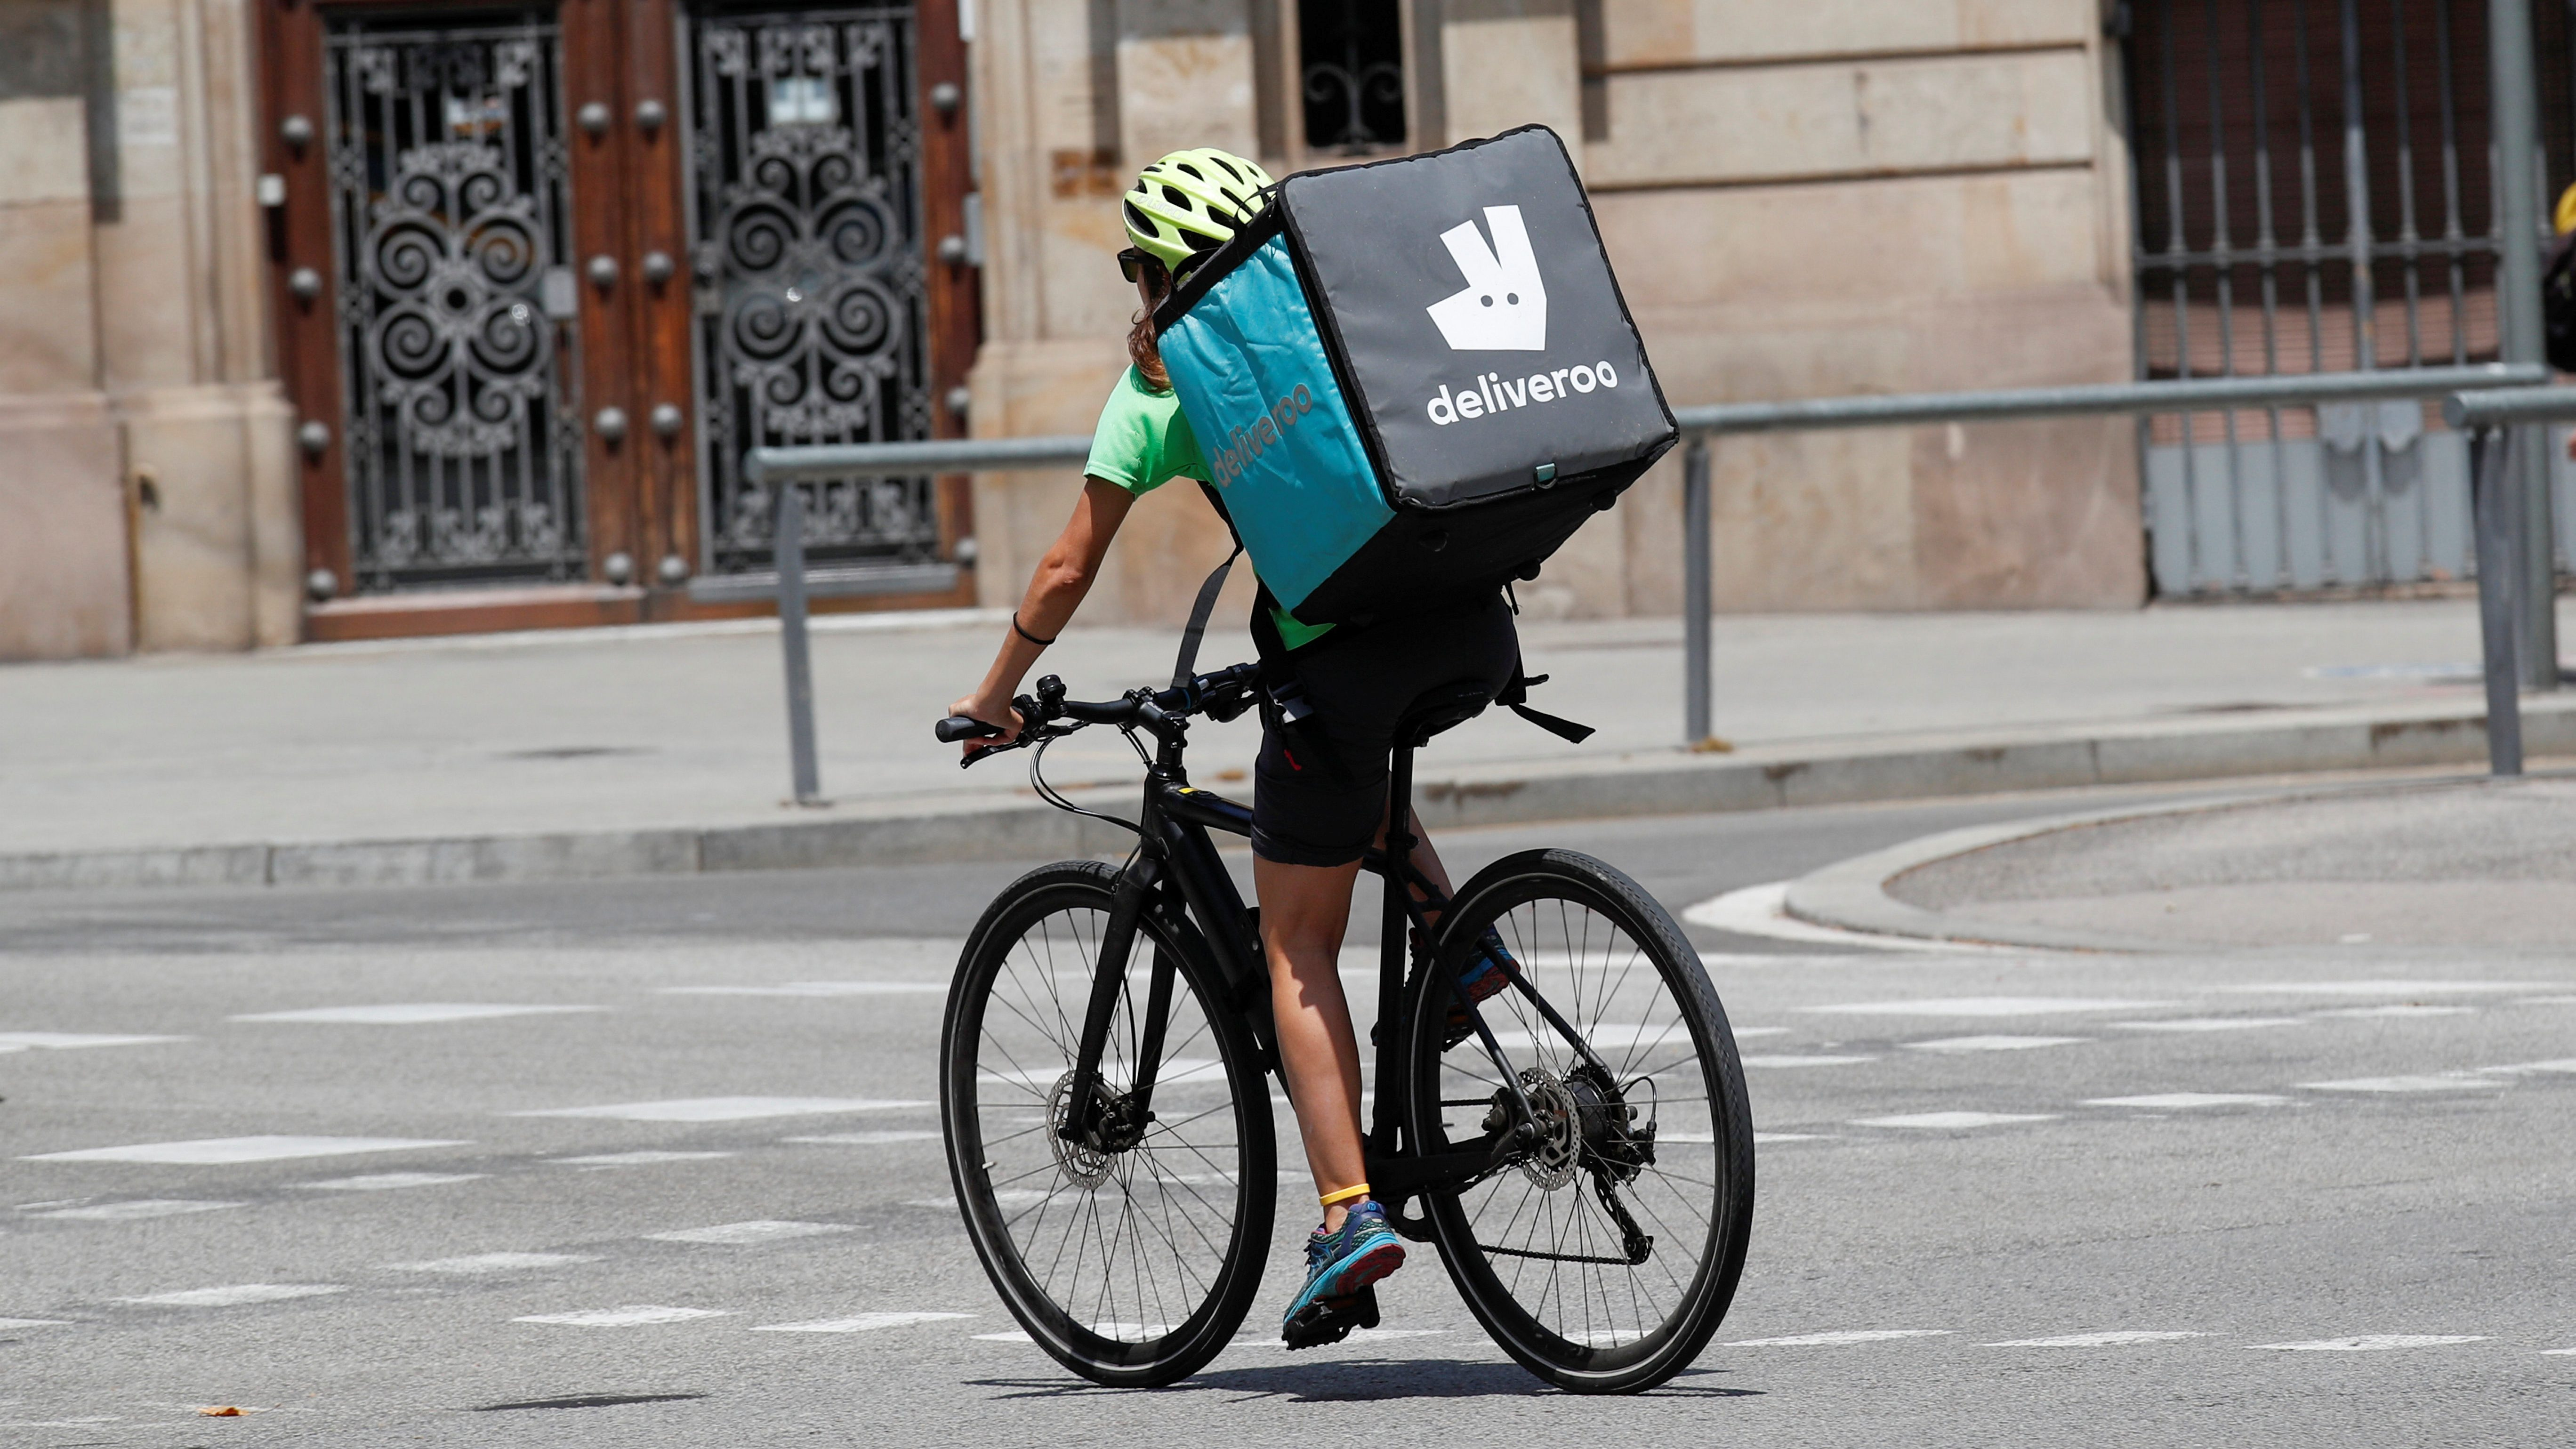 A Deliveroo rider on his bike